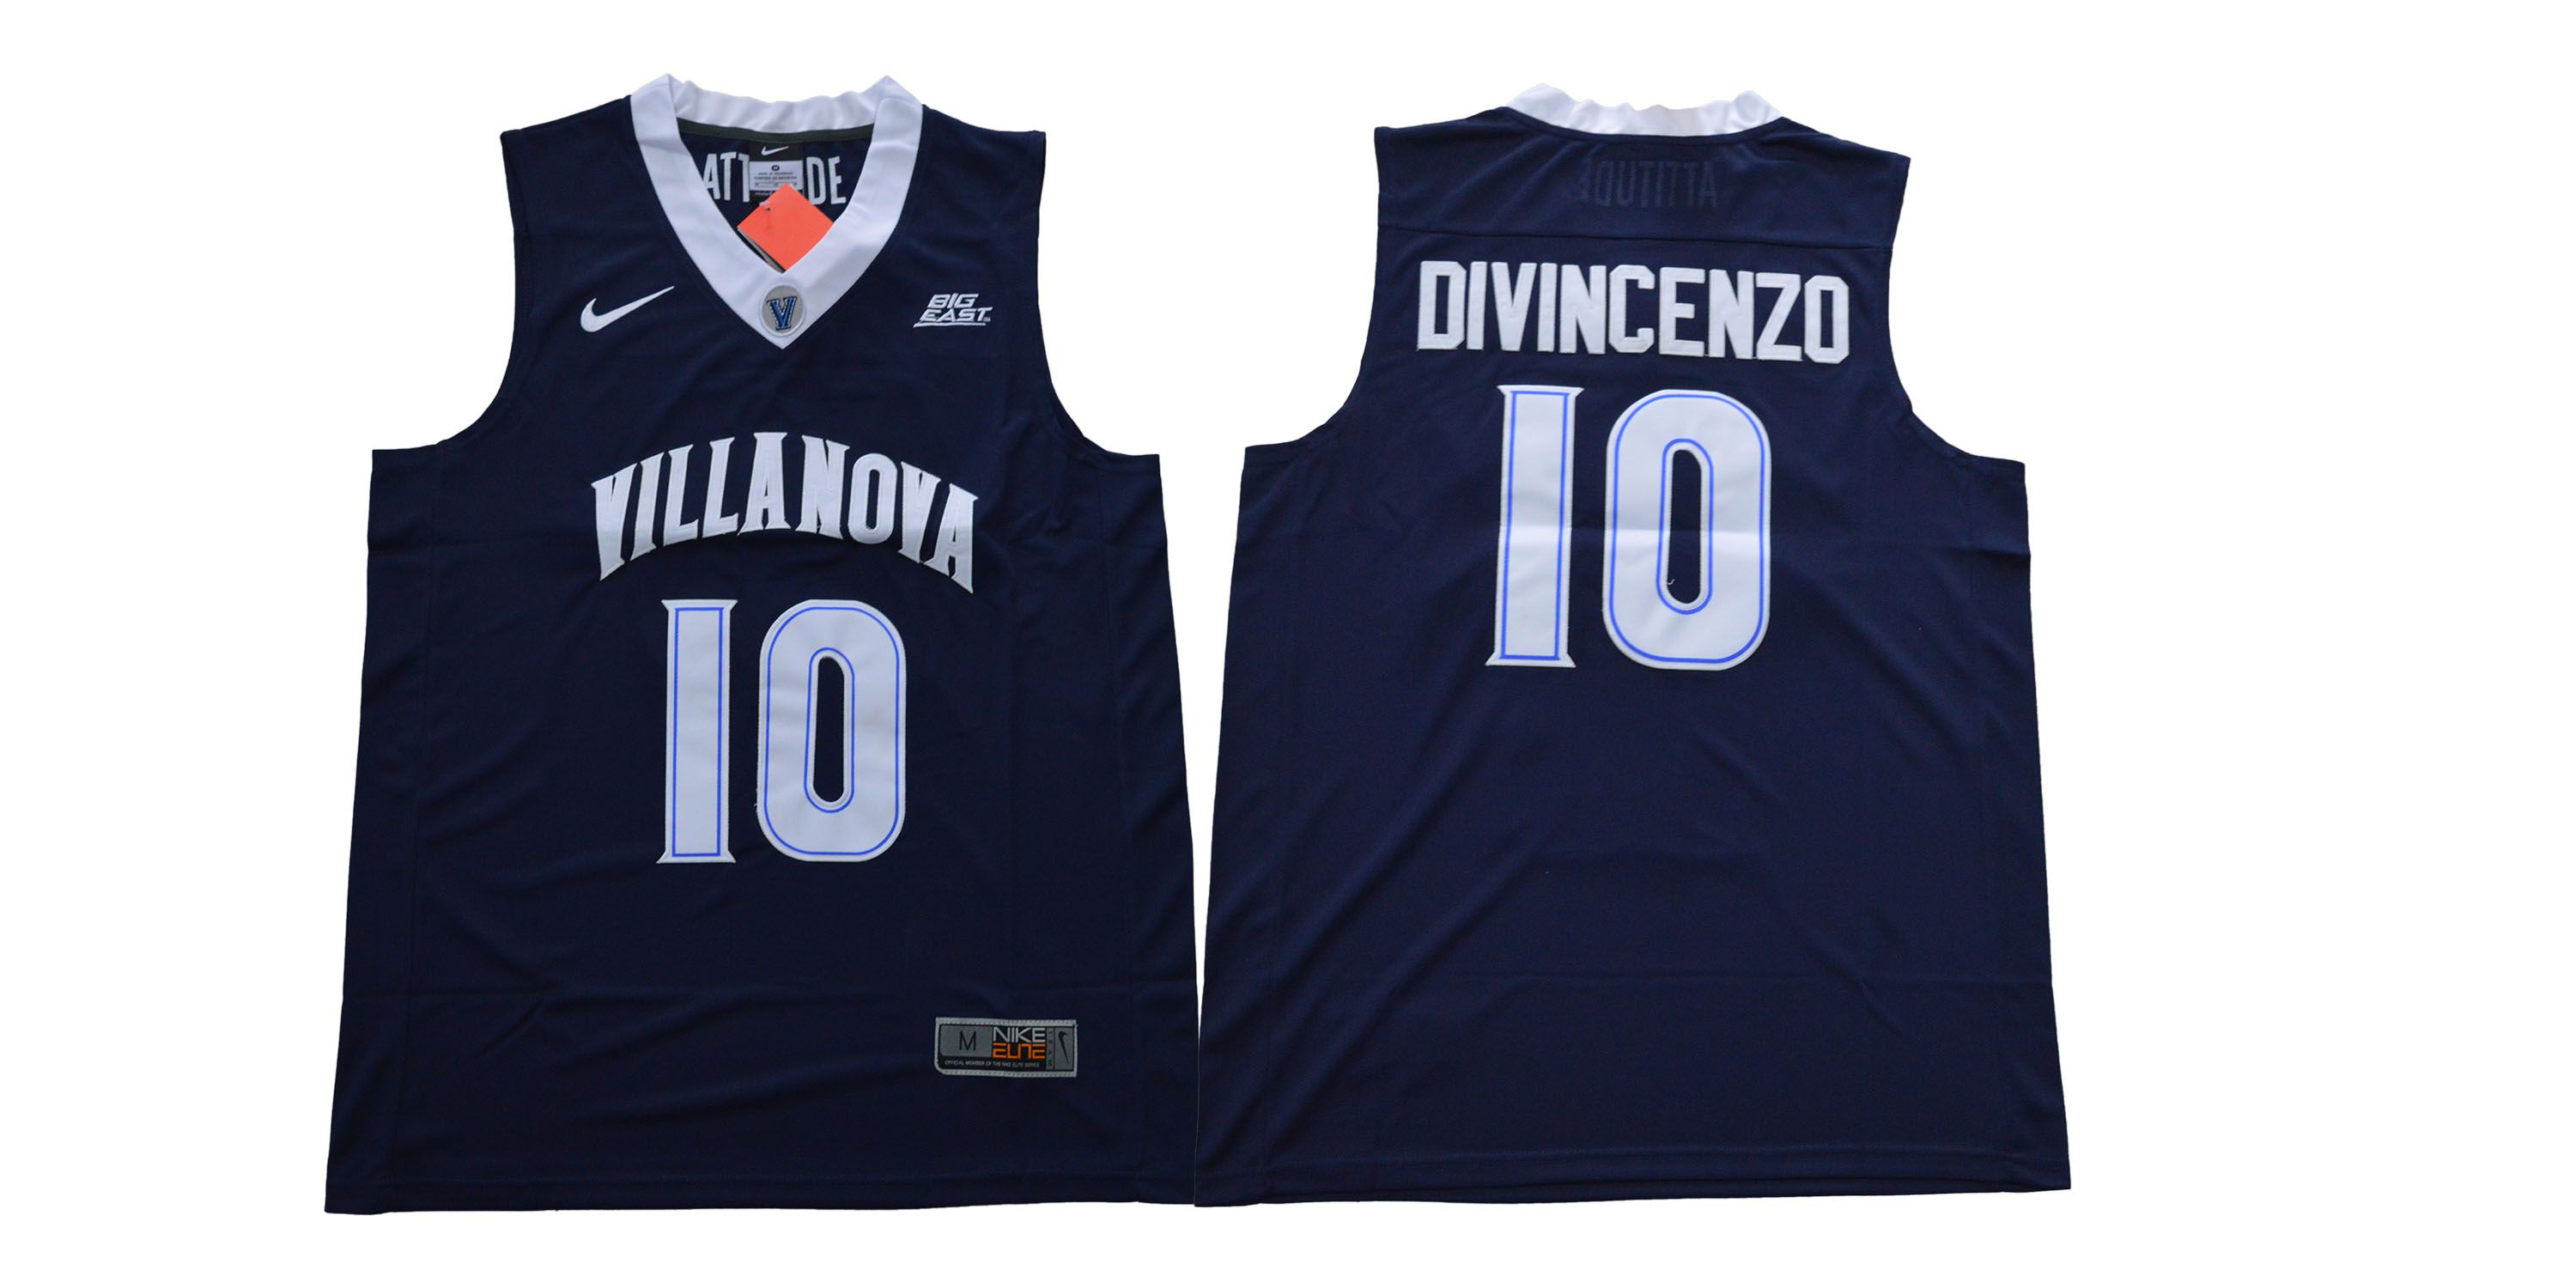 Men Villanova 10 Divincenzo Blue Nike NCAA Jerseys1